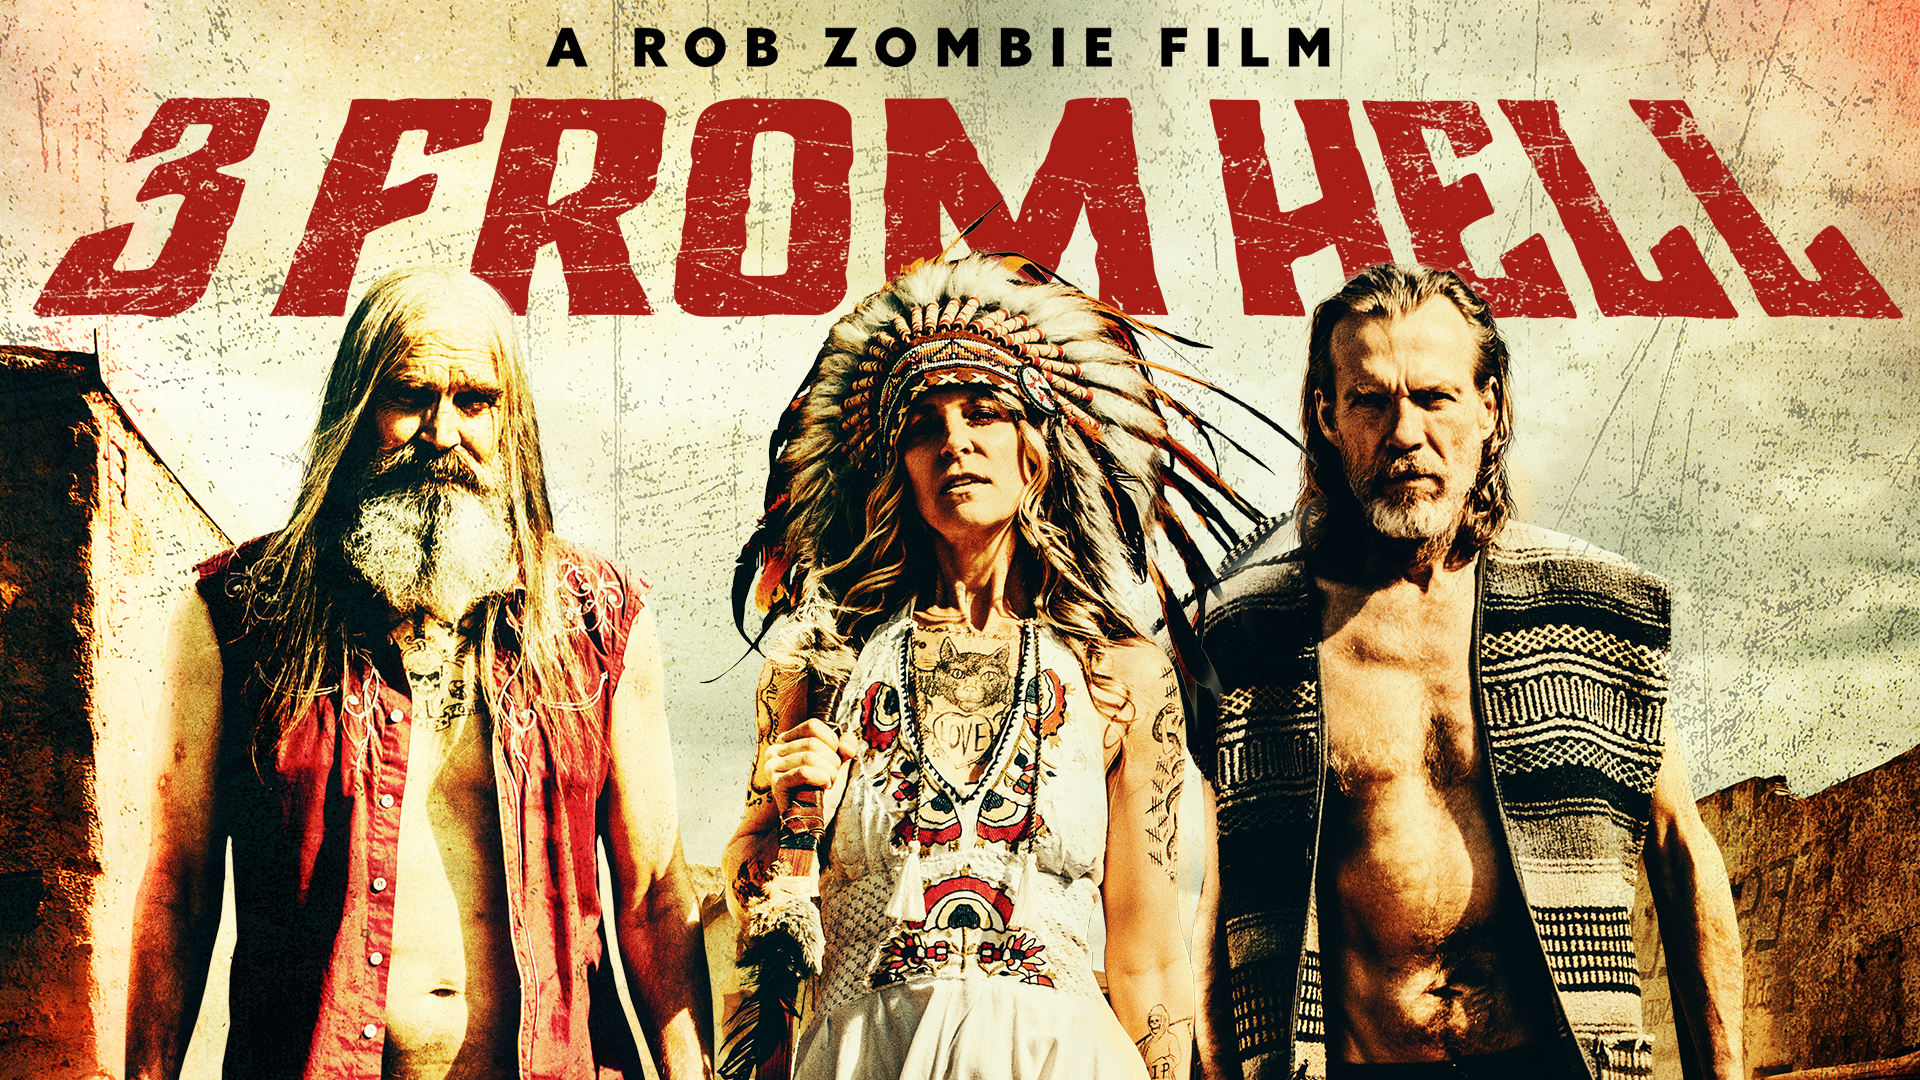 Watch The Devils Rejects Prime Video